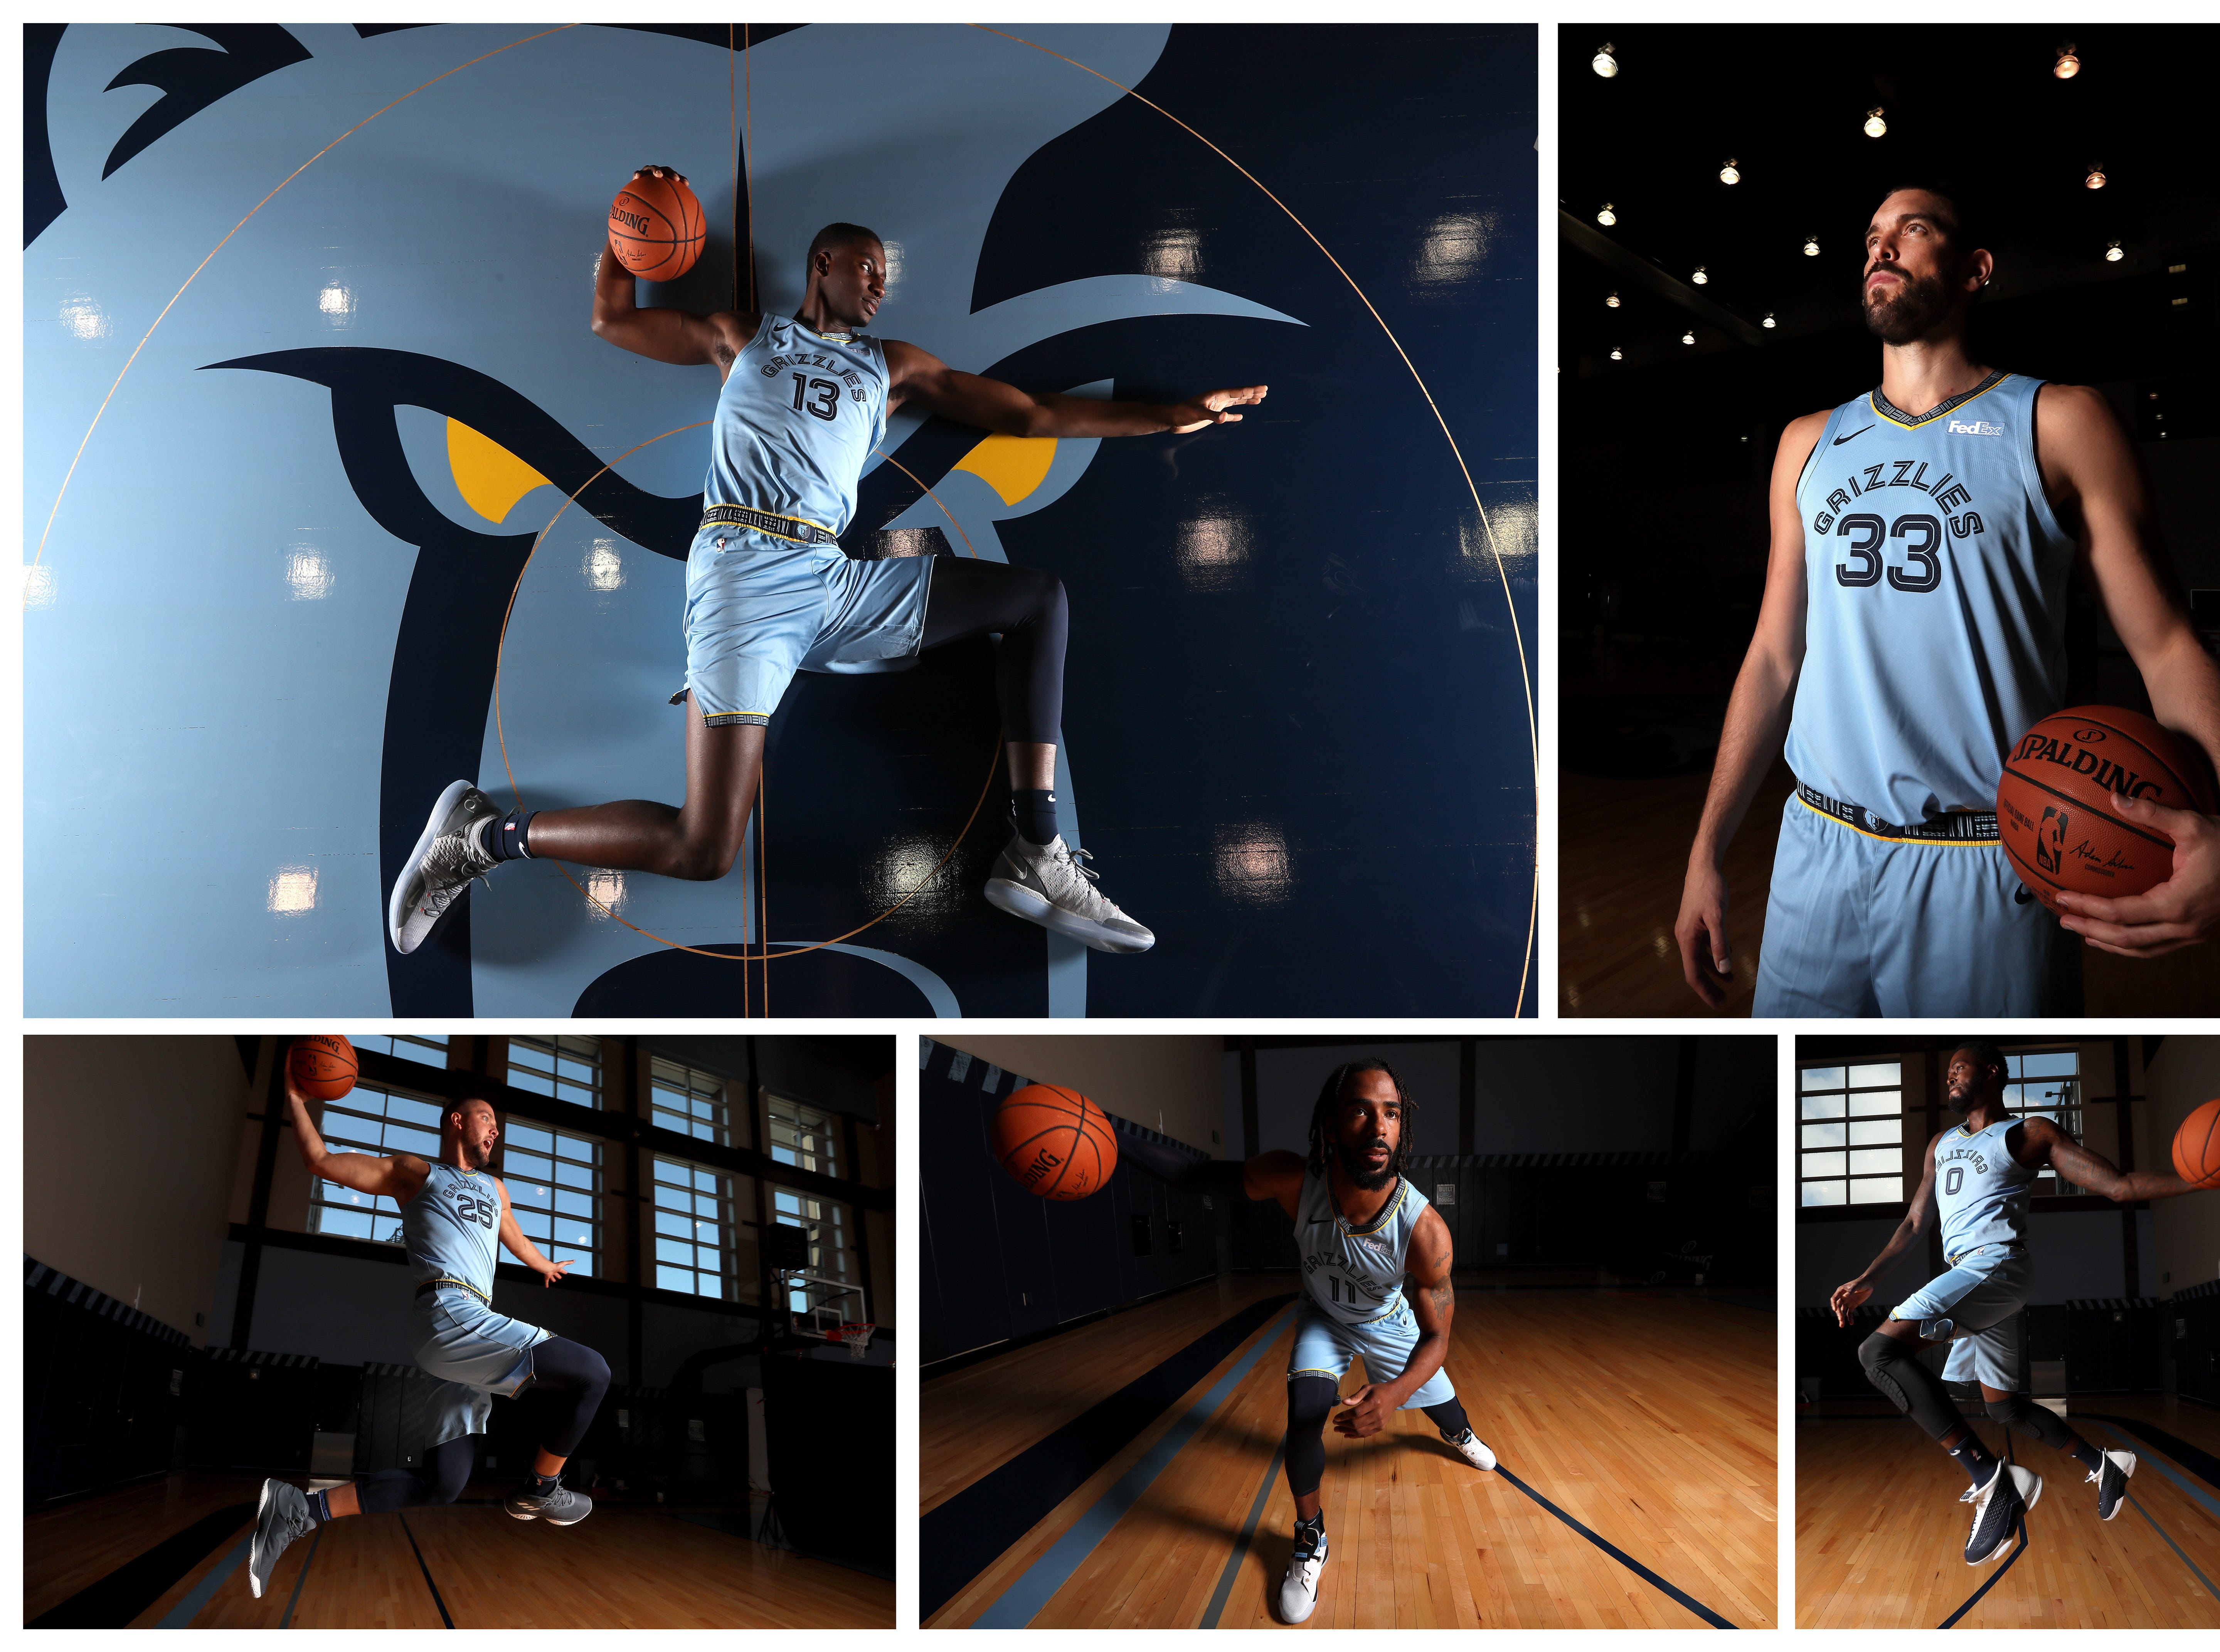 Memphis Grizzlies players clockwise from top-left: Jaren Jackson Jr., Marc Gasol, JaMychal Green, Mike Conley, and Chandler Parsons during the team Media Day on Monday, Sept. 24, 2018.